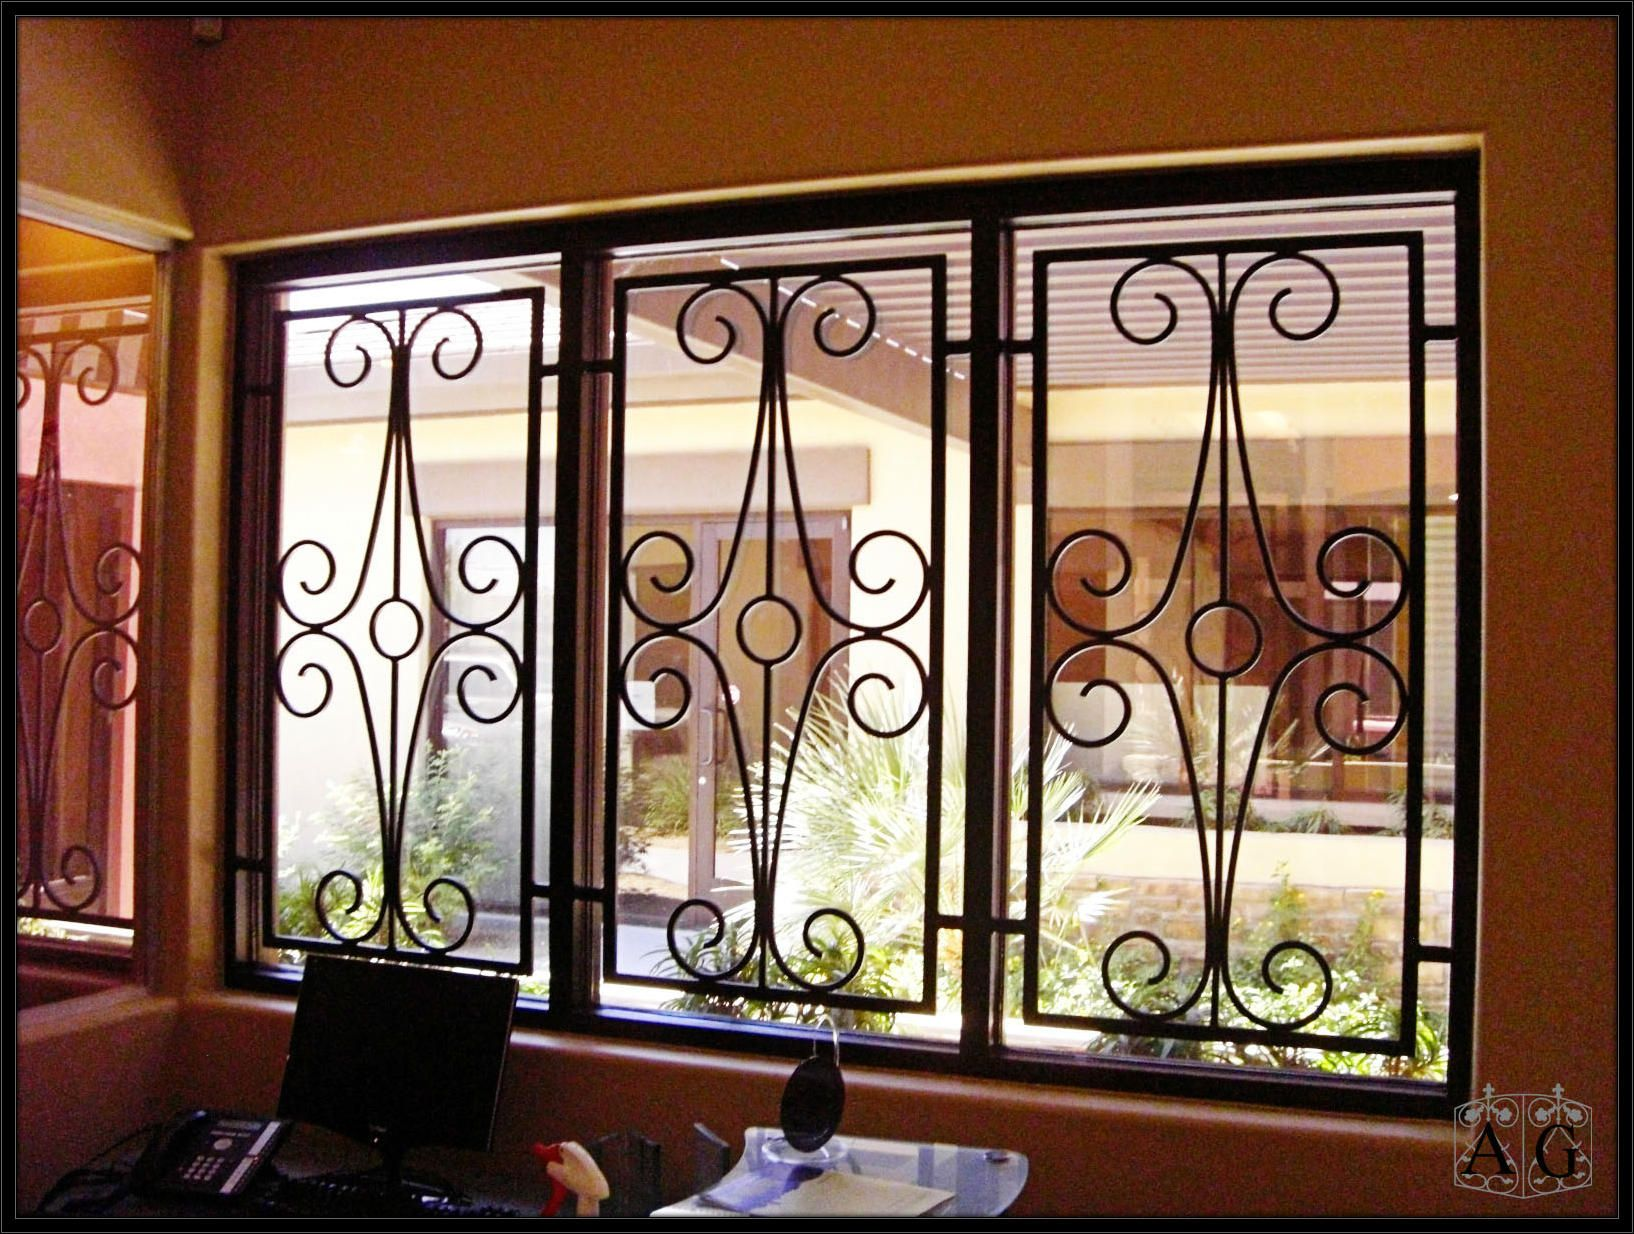 Five facts about wrought iron security bars window bars